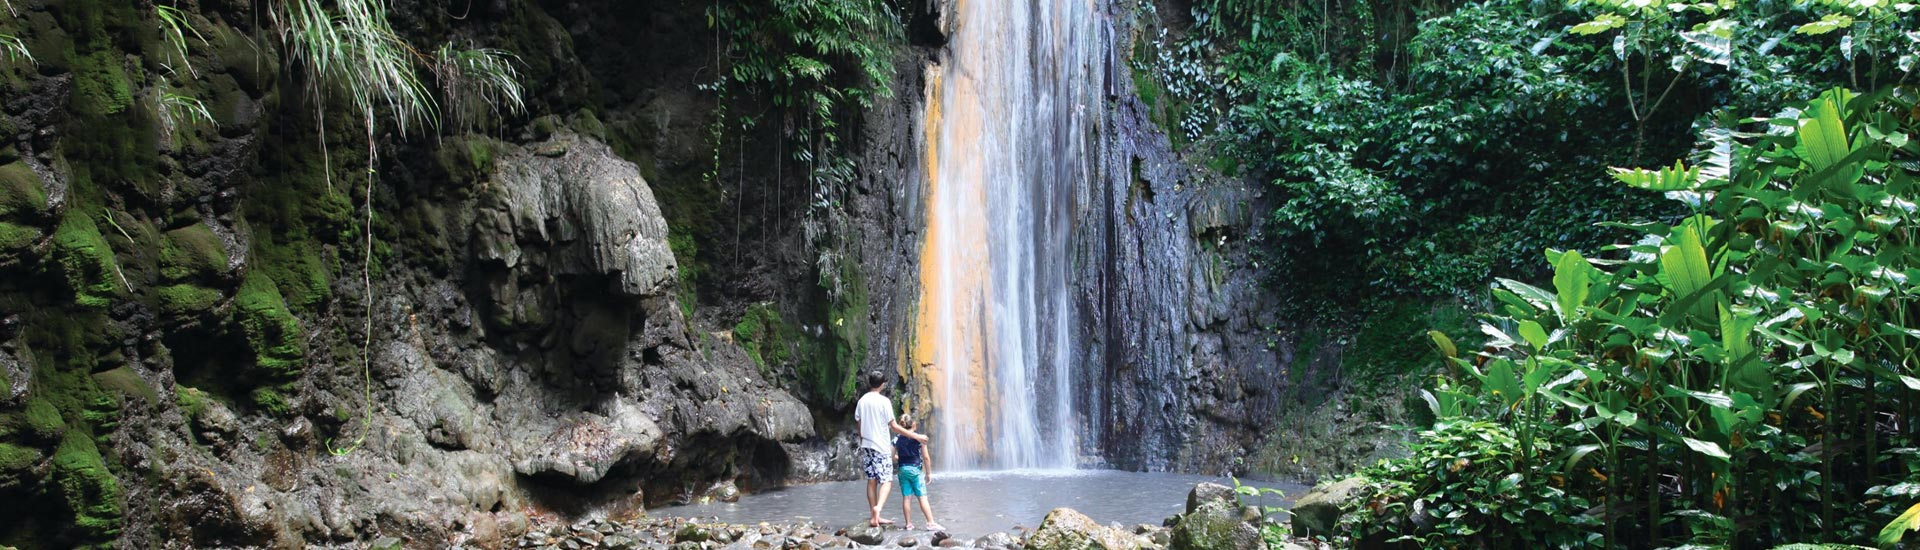 Diamond waterfall st lucia how it got its name for Waterfall environment